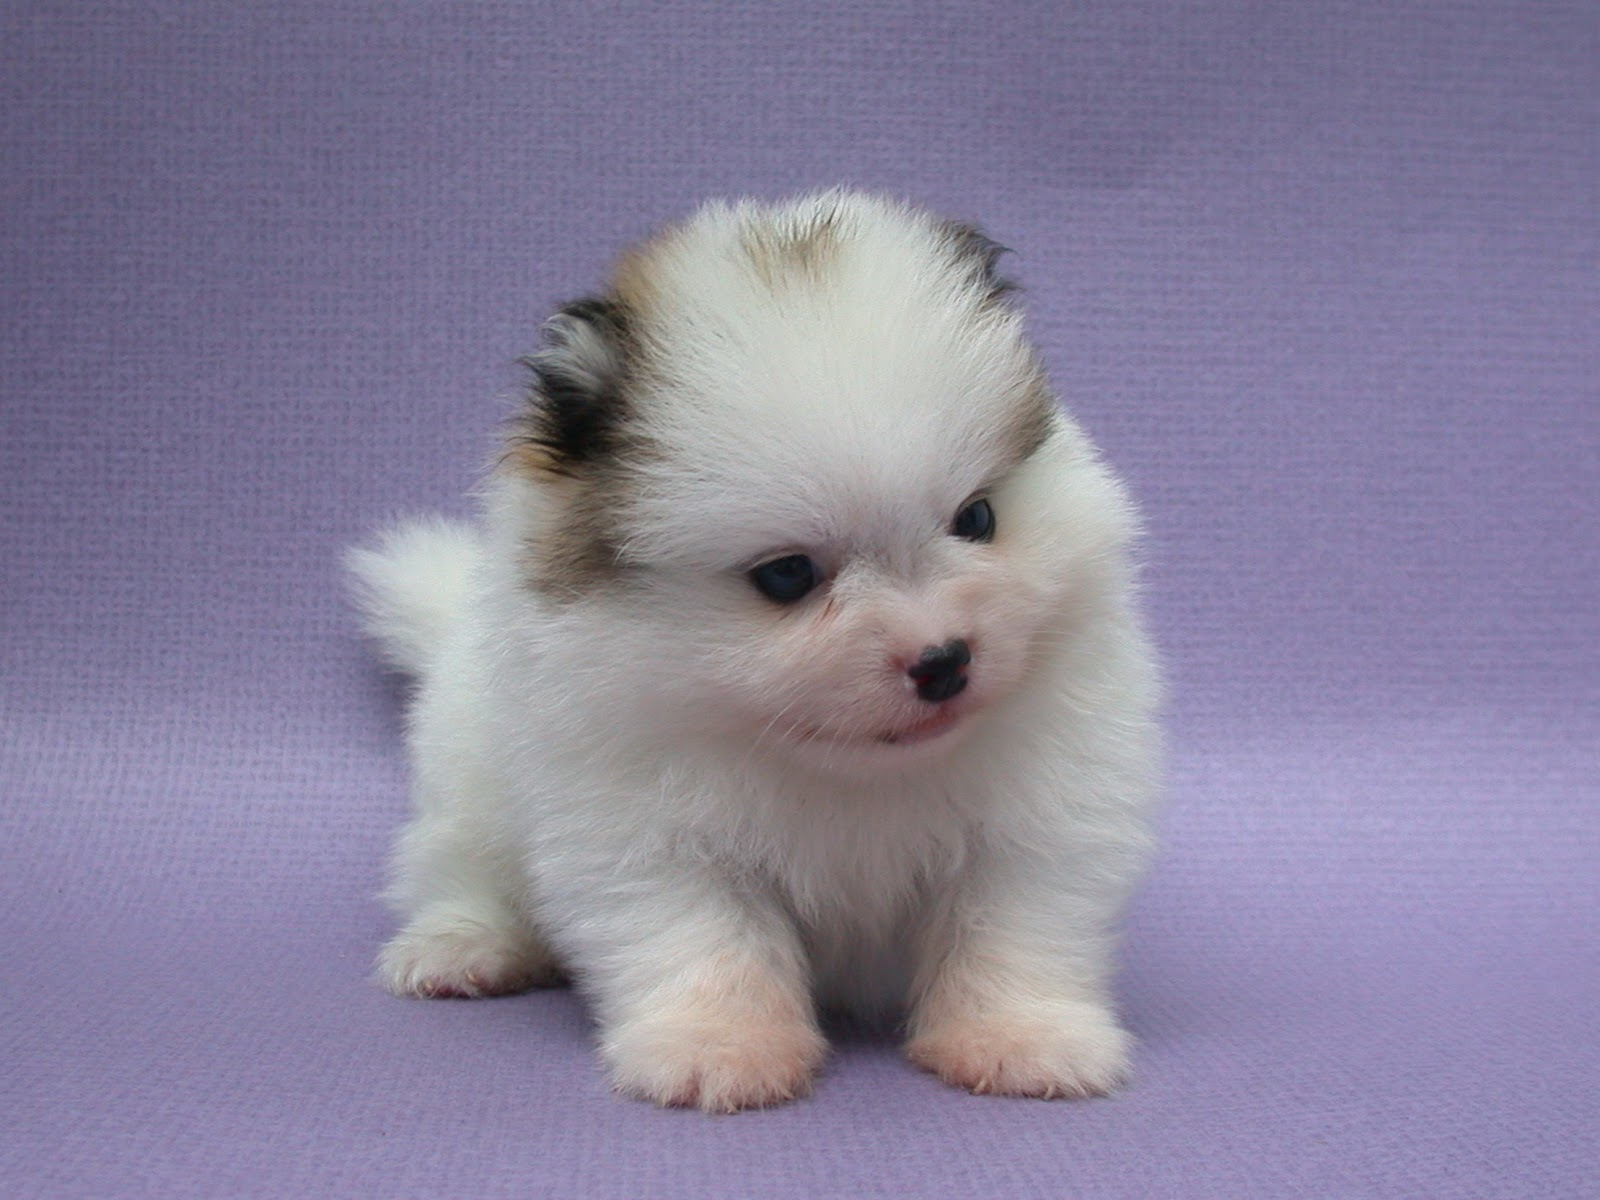 photos of pomeranian cute puppy dogs pomeranian puppies 8248